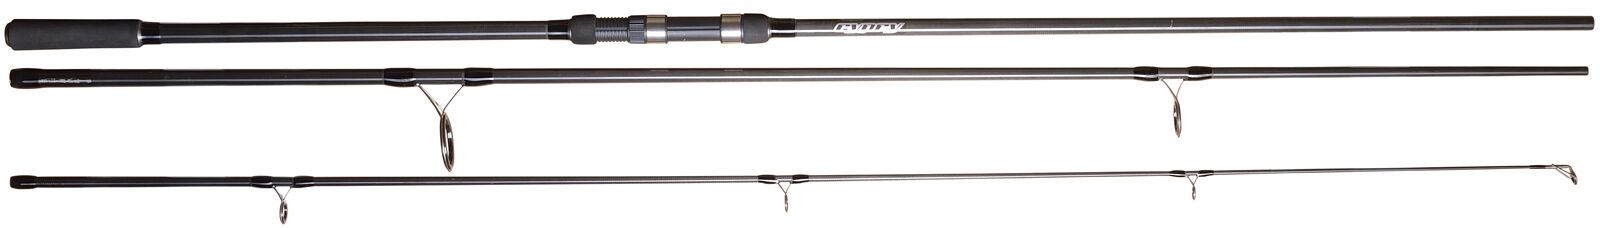 Shakespeare Cypry Cypry Cypry 11ft - 13ft, 3 Piece & Telescopic Coarse Fishing Rods 0882b8